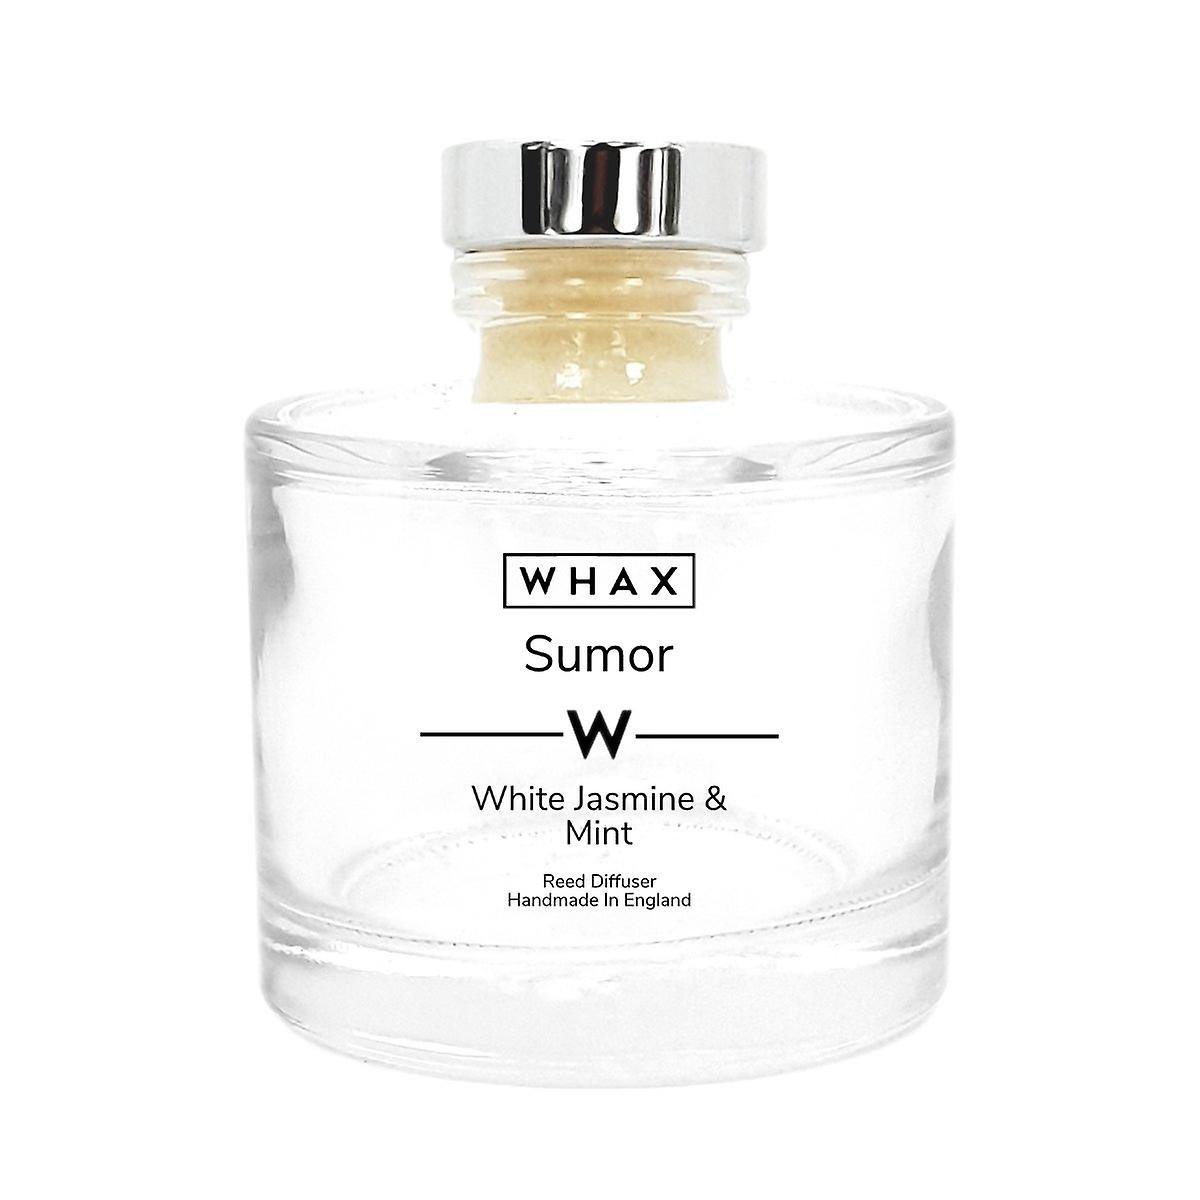 White jasmine & mint reed diffuser | room diffuser